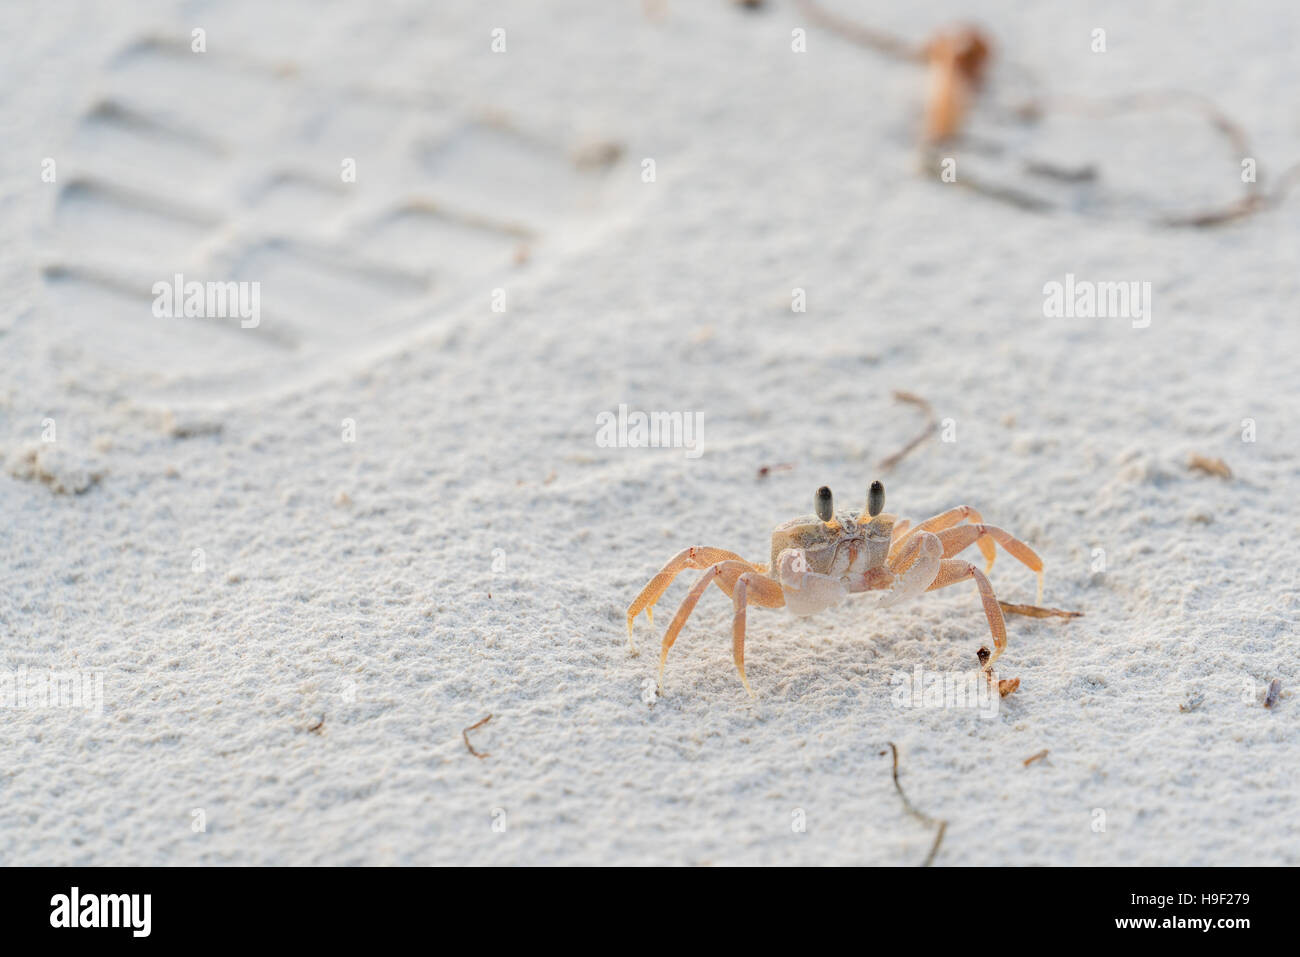 Ghost crab on the white sands of Diani Beach, Mombasa - Stock Image